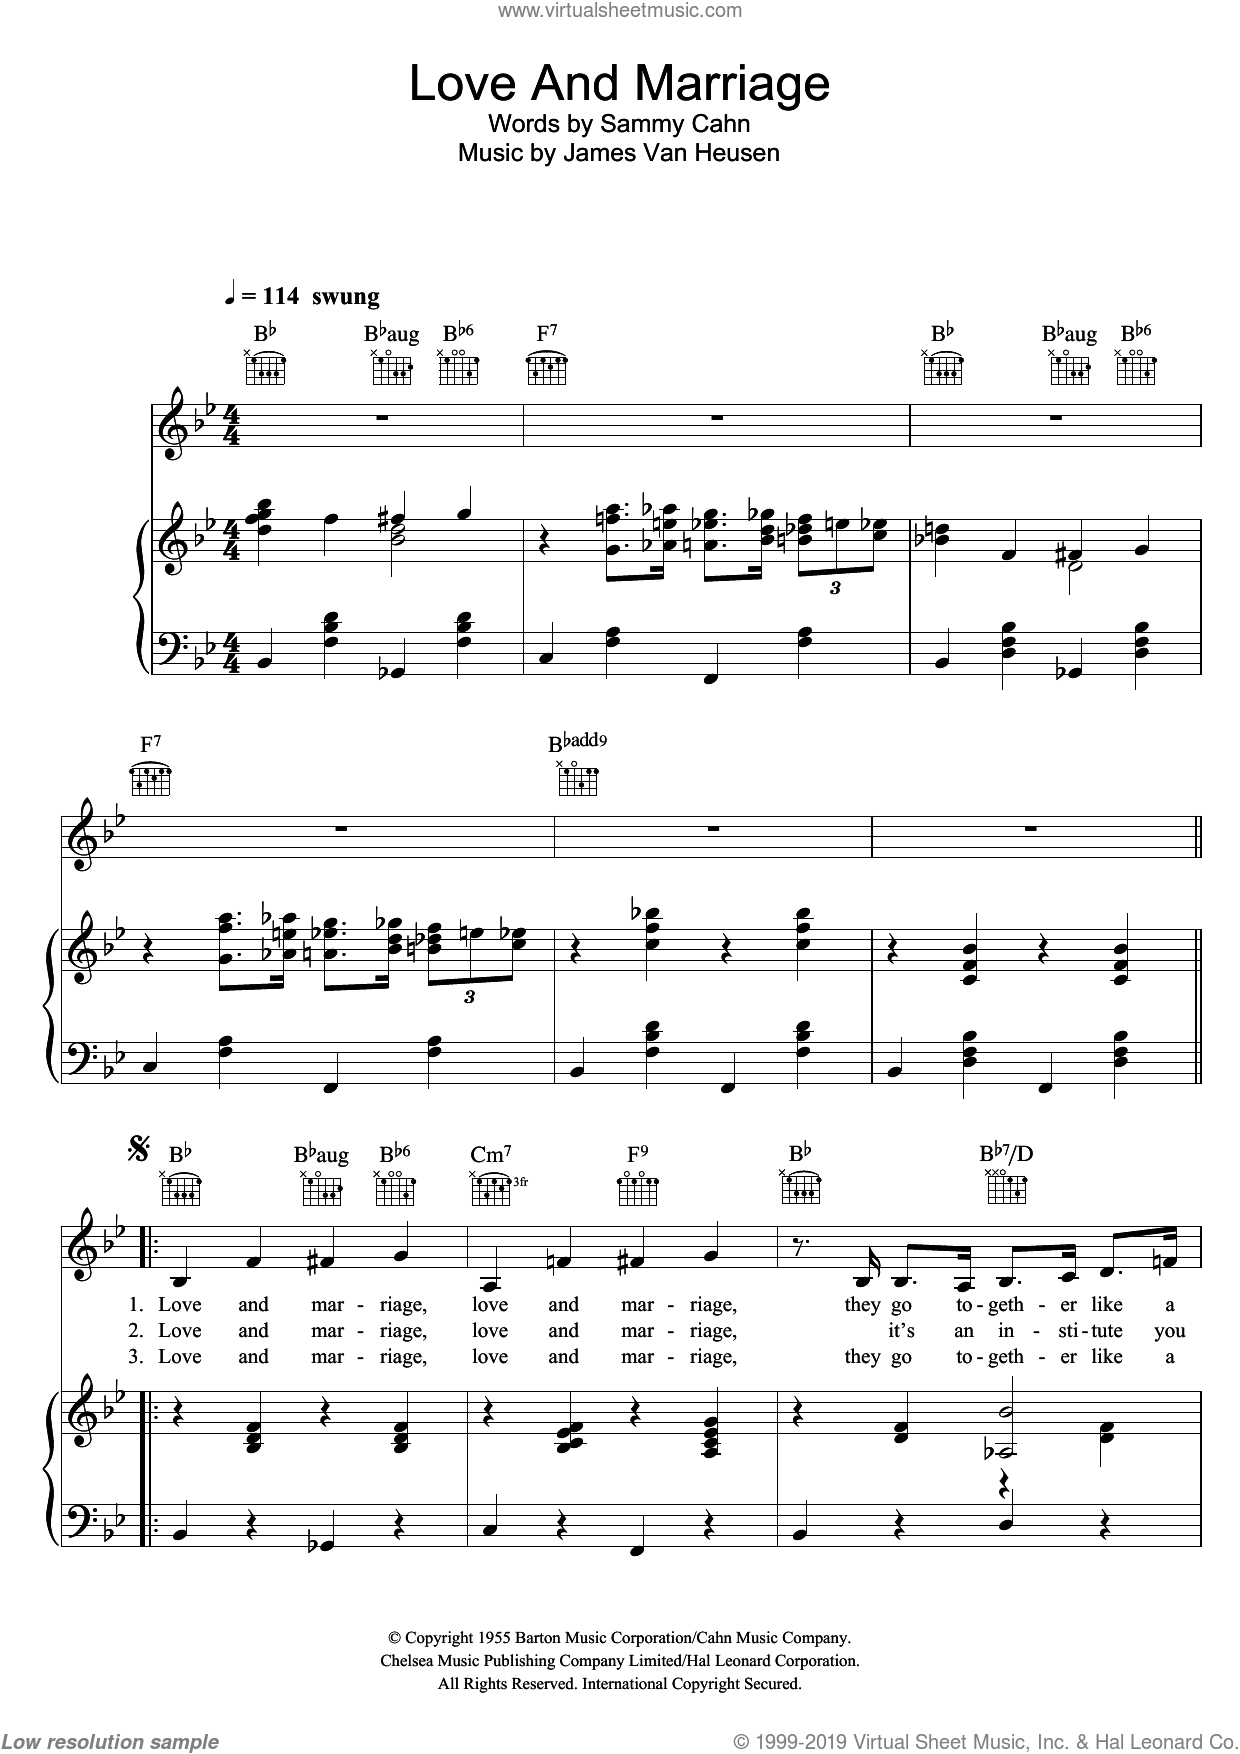 Love And Marriage sheet music for voice, piano or guitar by Sammy Cahn